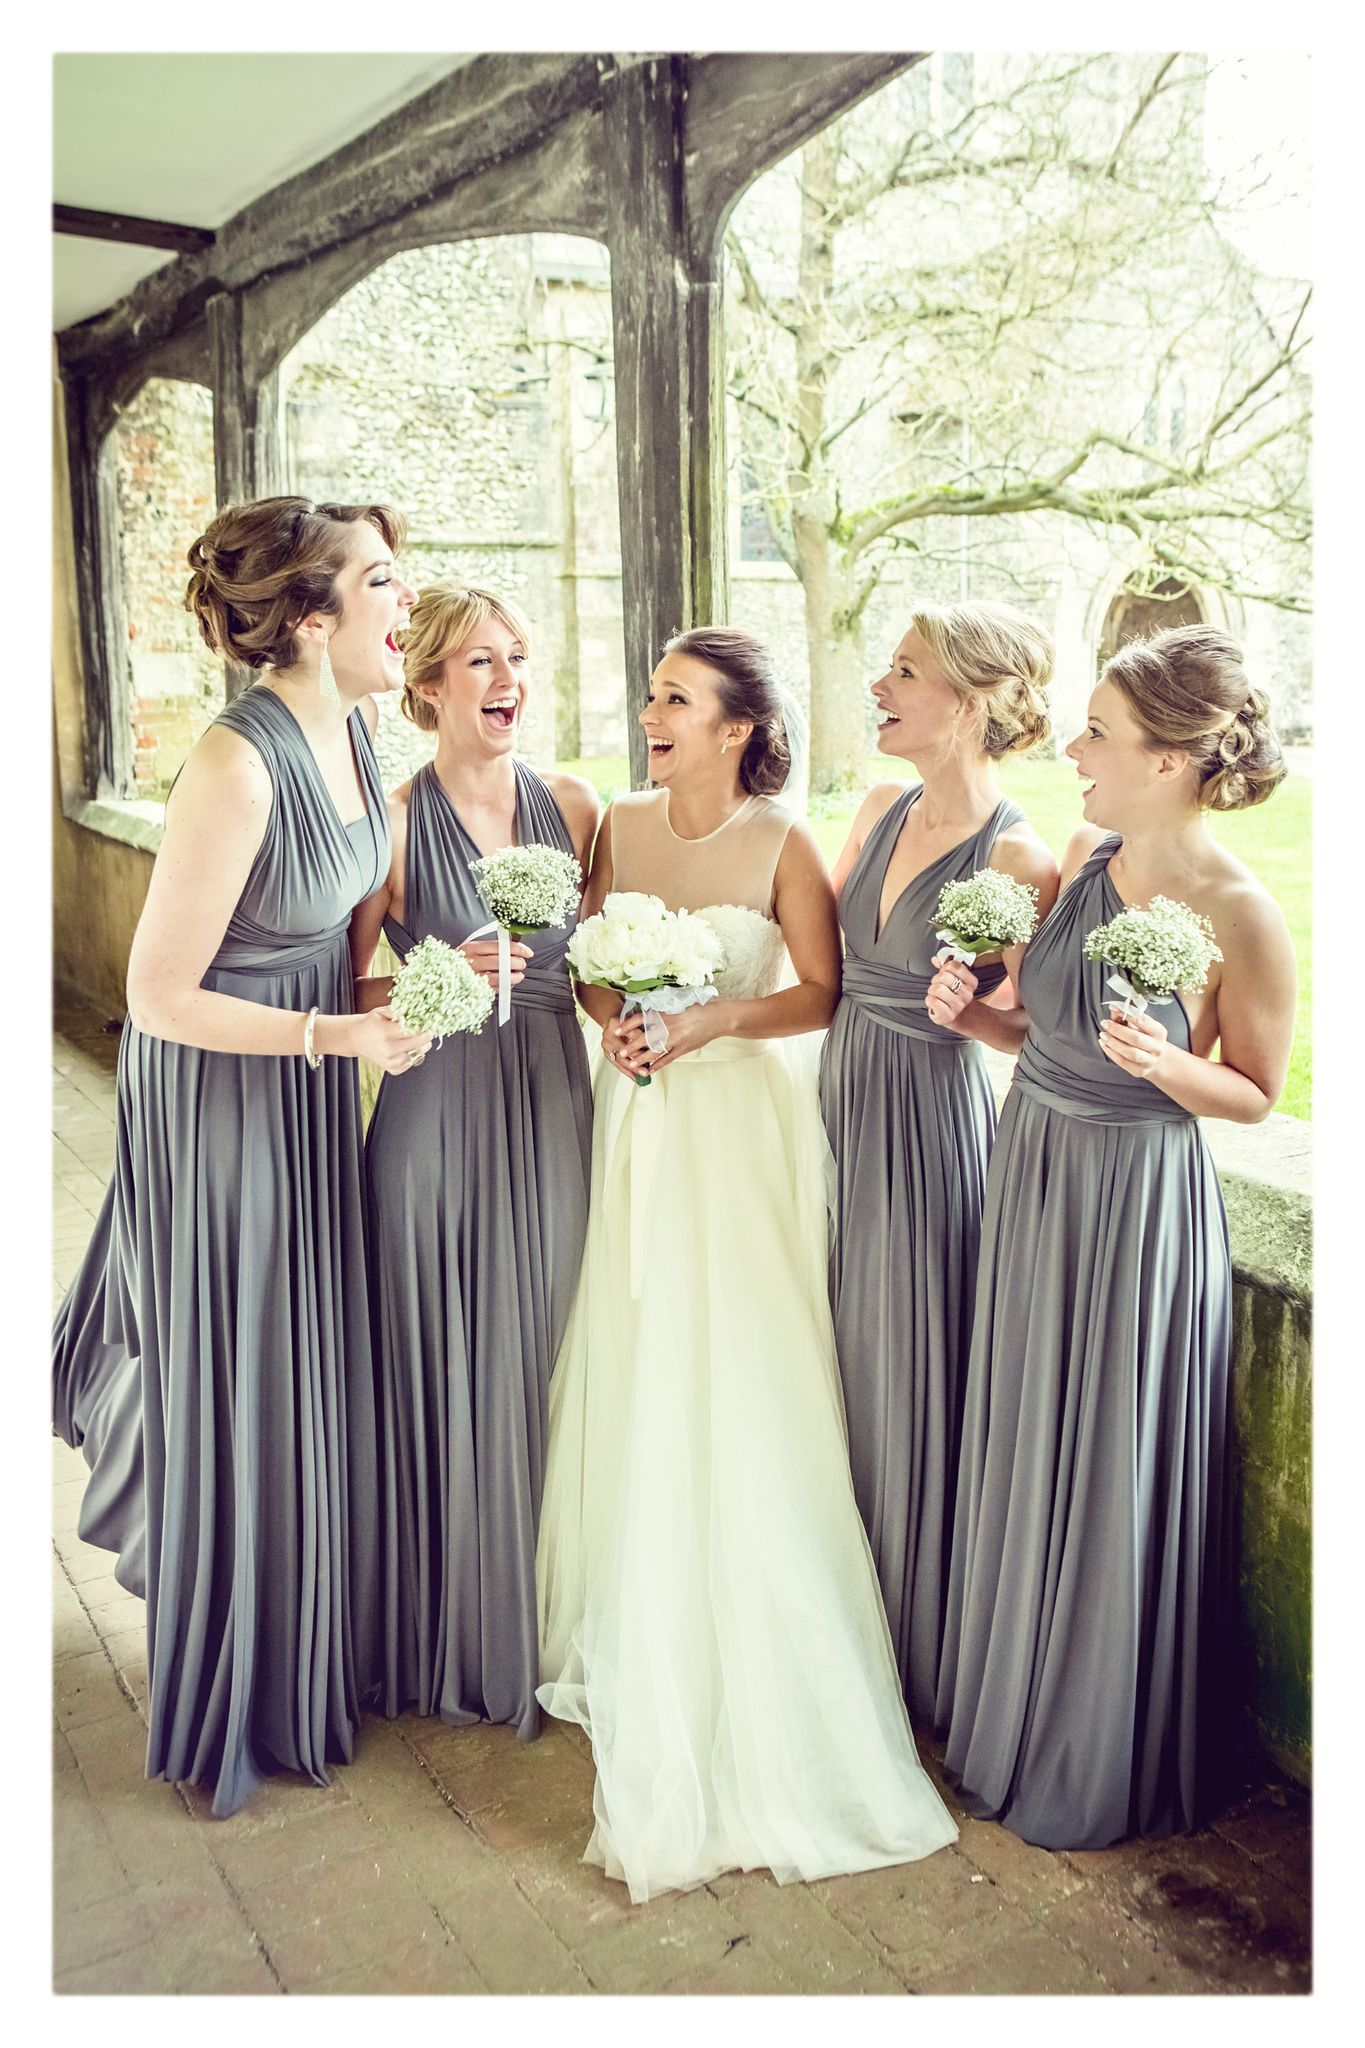 Charcoal ballgowns twobirds bridesmaid dresses beautful leah charcoal ballgowns twobirds bridesmaid dresses beautful leah and her bridesmaids in twobirds multiway ombrellifo Choice Image